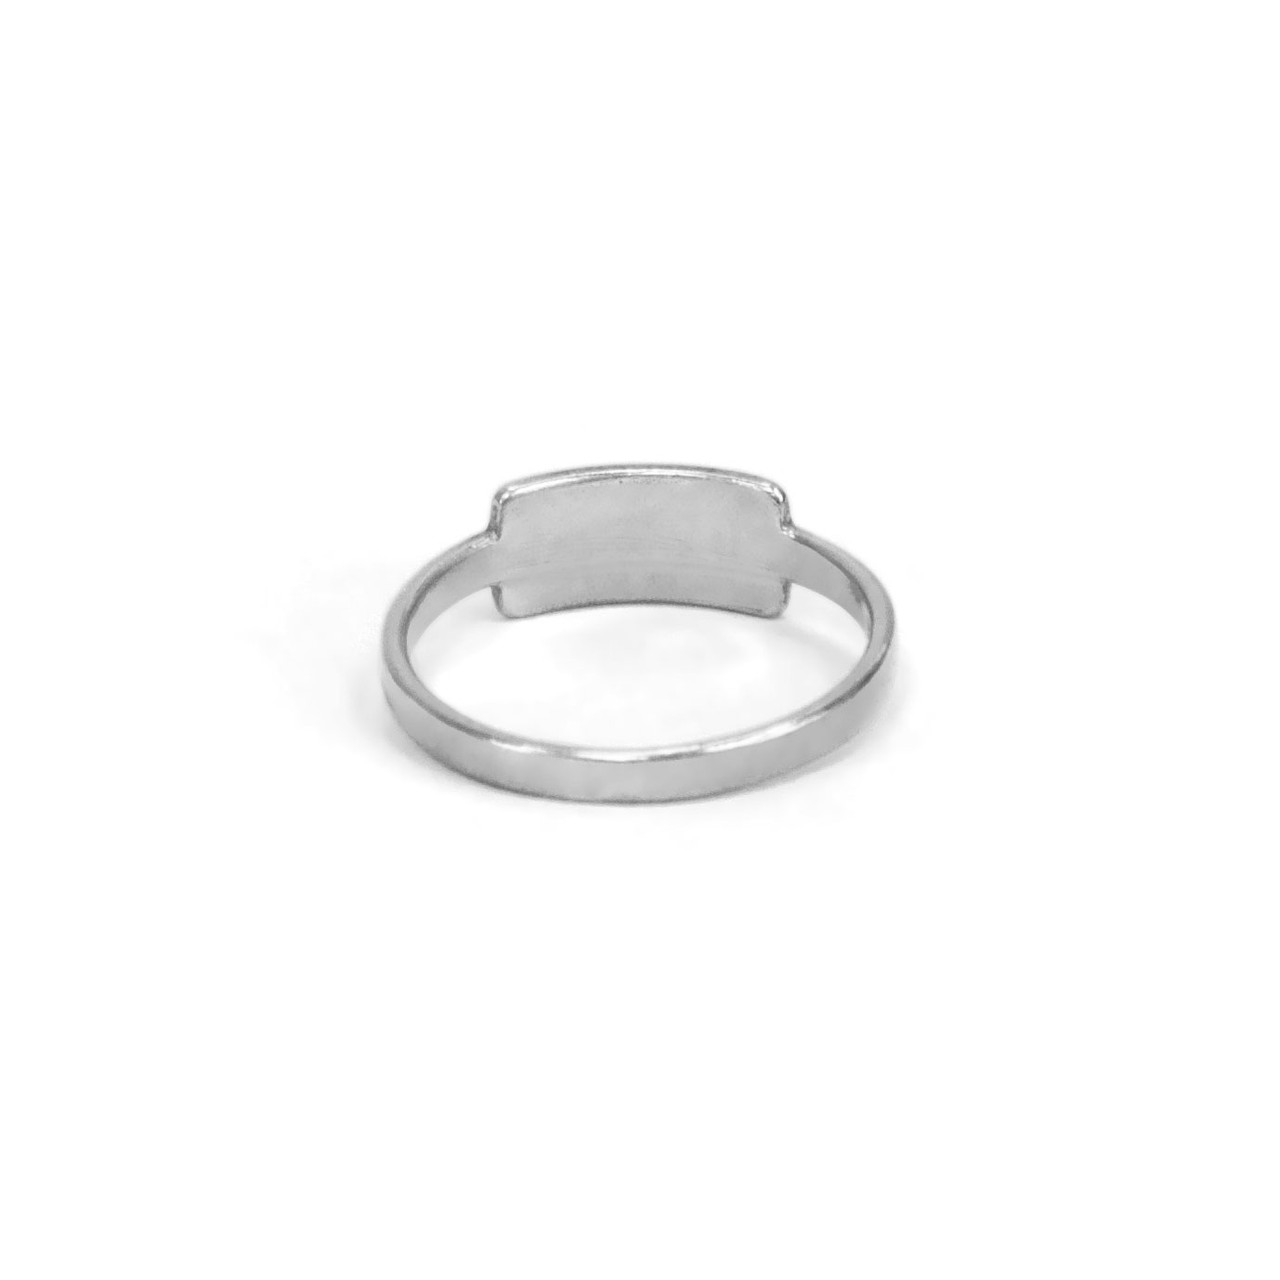 Silver handwriting ring with your handwritten note, shown from the back